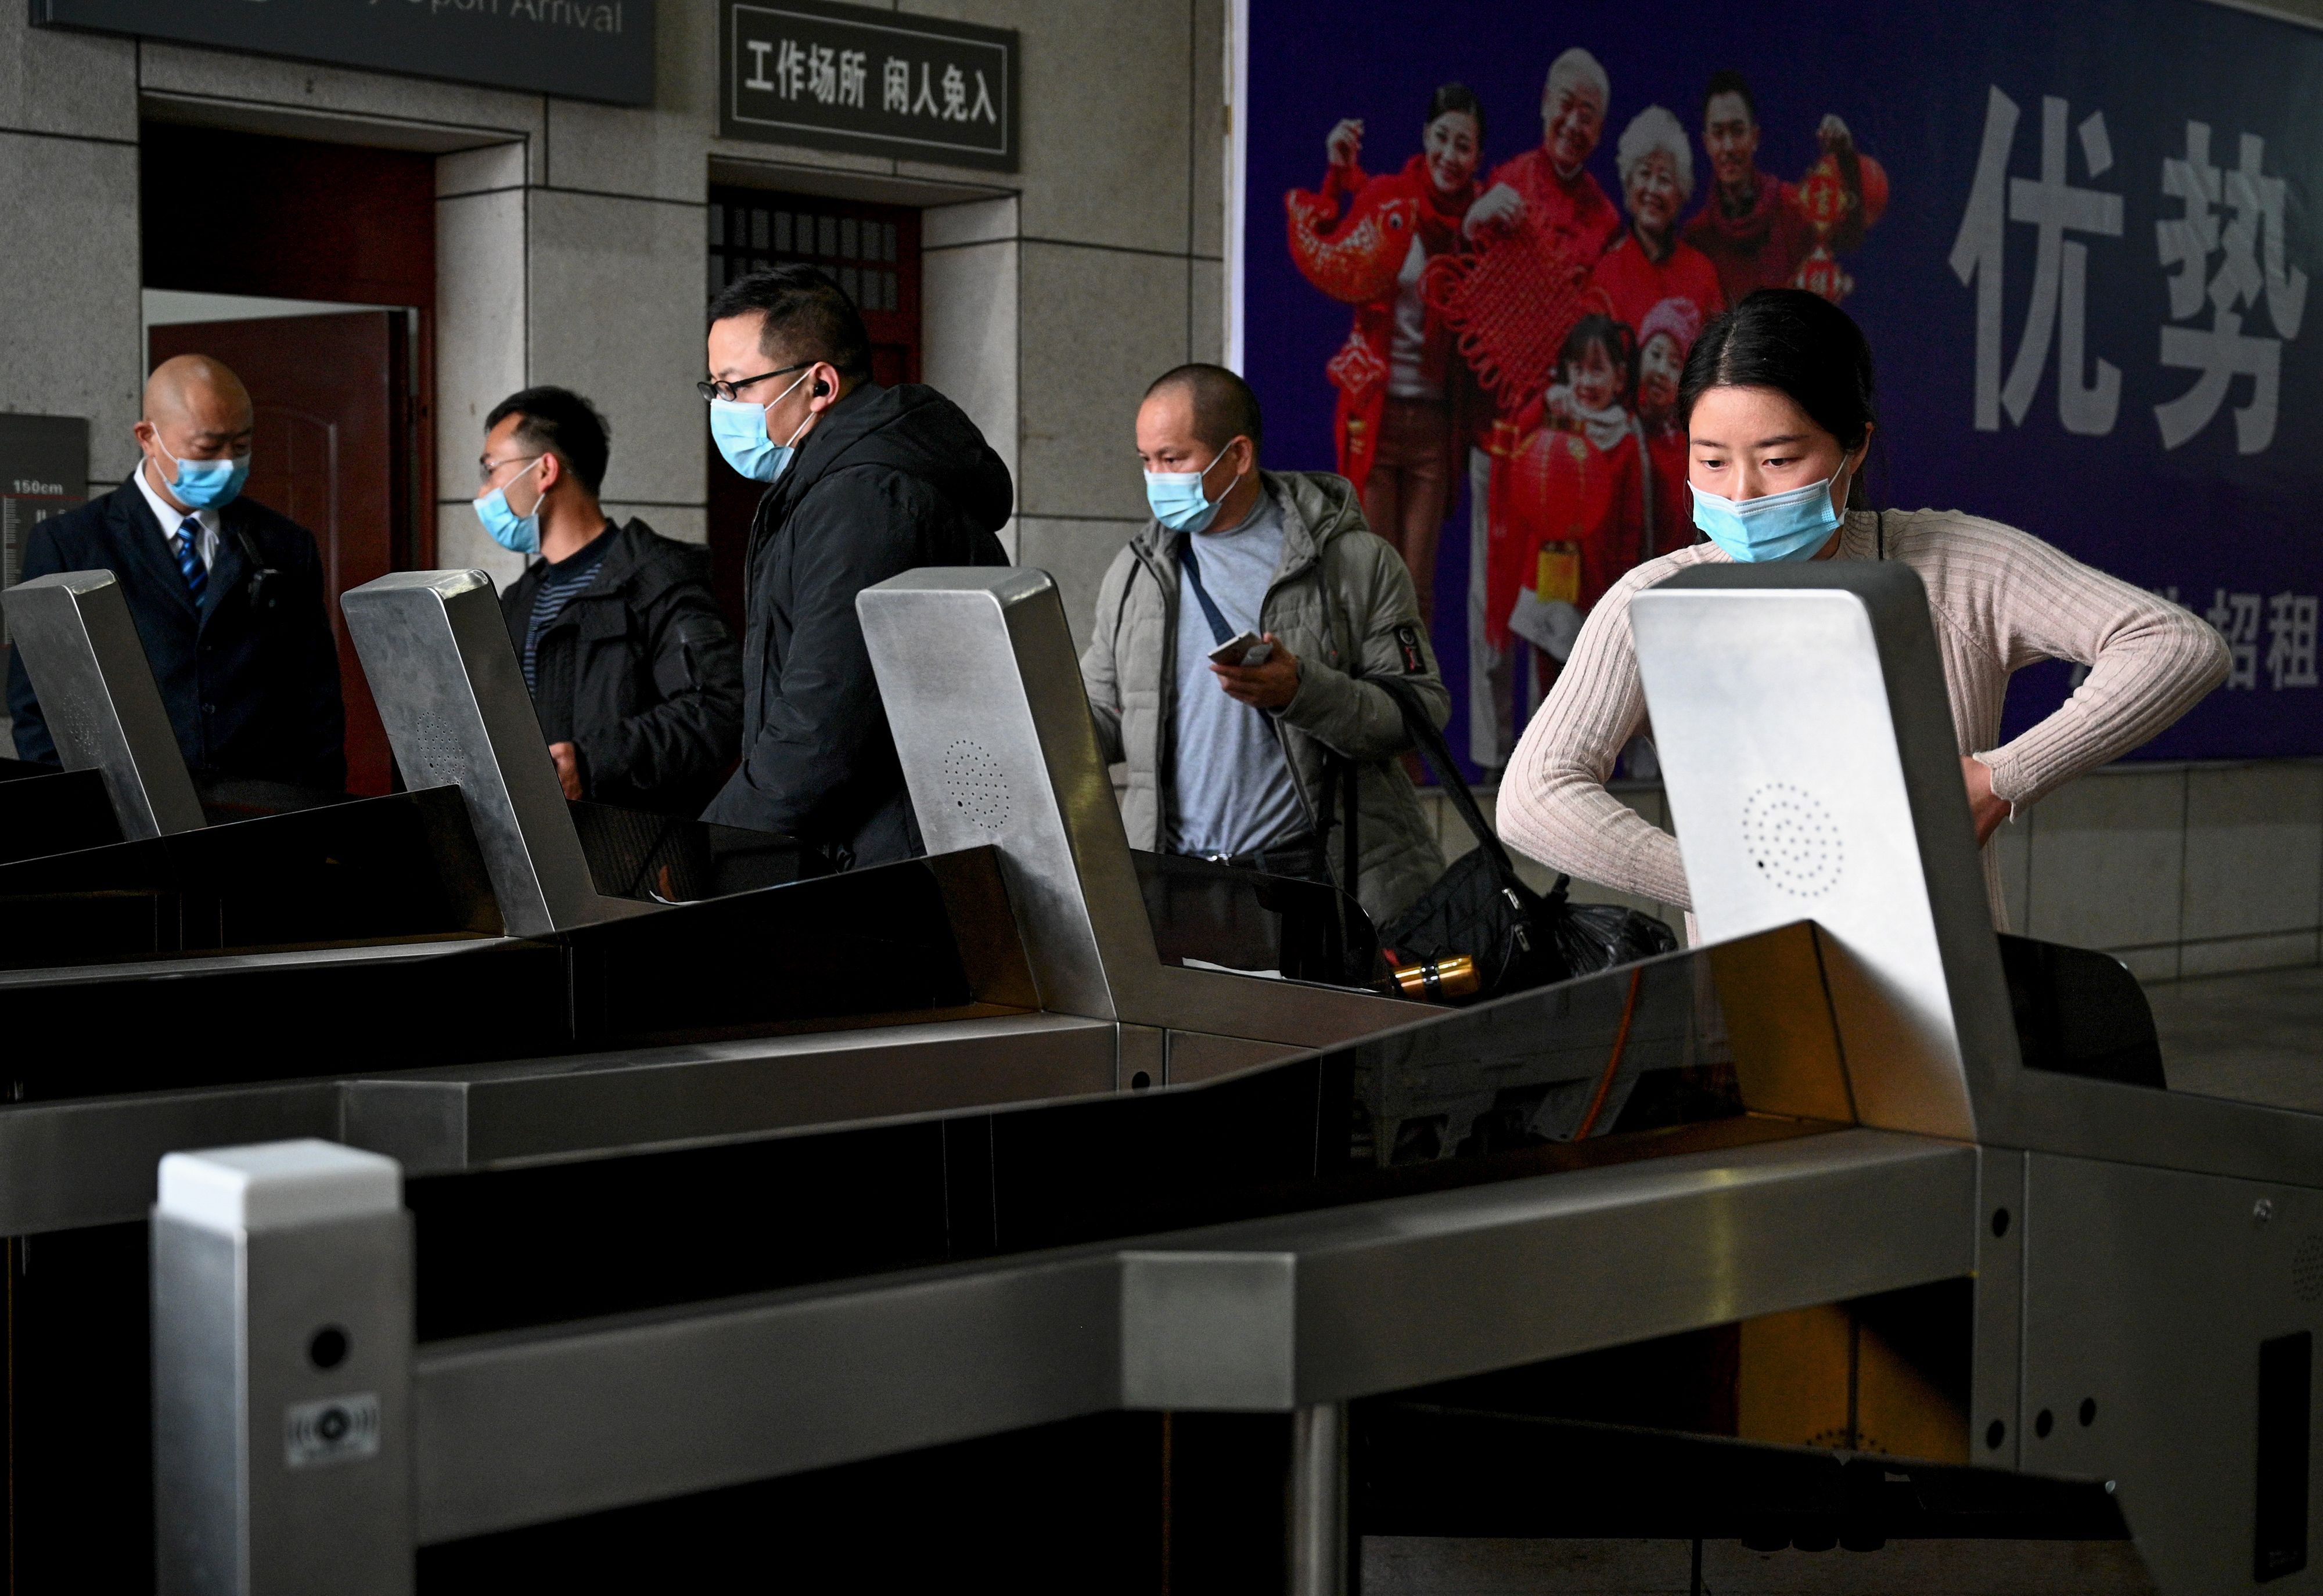 Passengers wearing facemasks arrive at the Macheng railway station, after a months-long lockdown as a preventive measure against the COVID-19 coronavirus, in Macheng in Chinas central Hubei province on March 25, 2020. - China lifted tough restrictions on the province at the epicentre of the coronavirus outbreak on March 25 after a months-long lockdown as the country reported no new domestic cases. (Photo by NOEL CELIS/AFP via Getty Images)